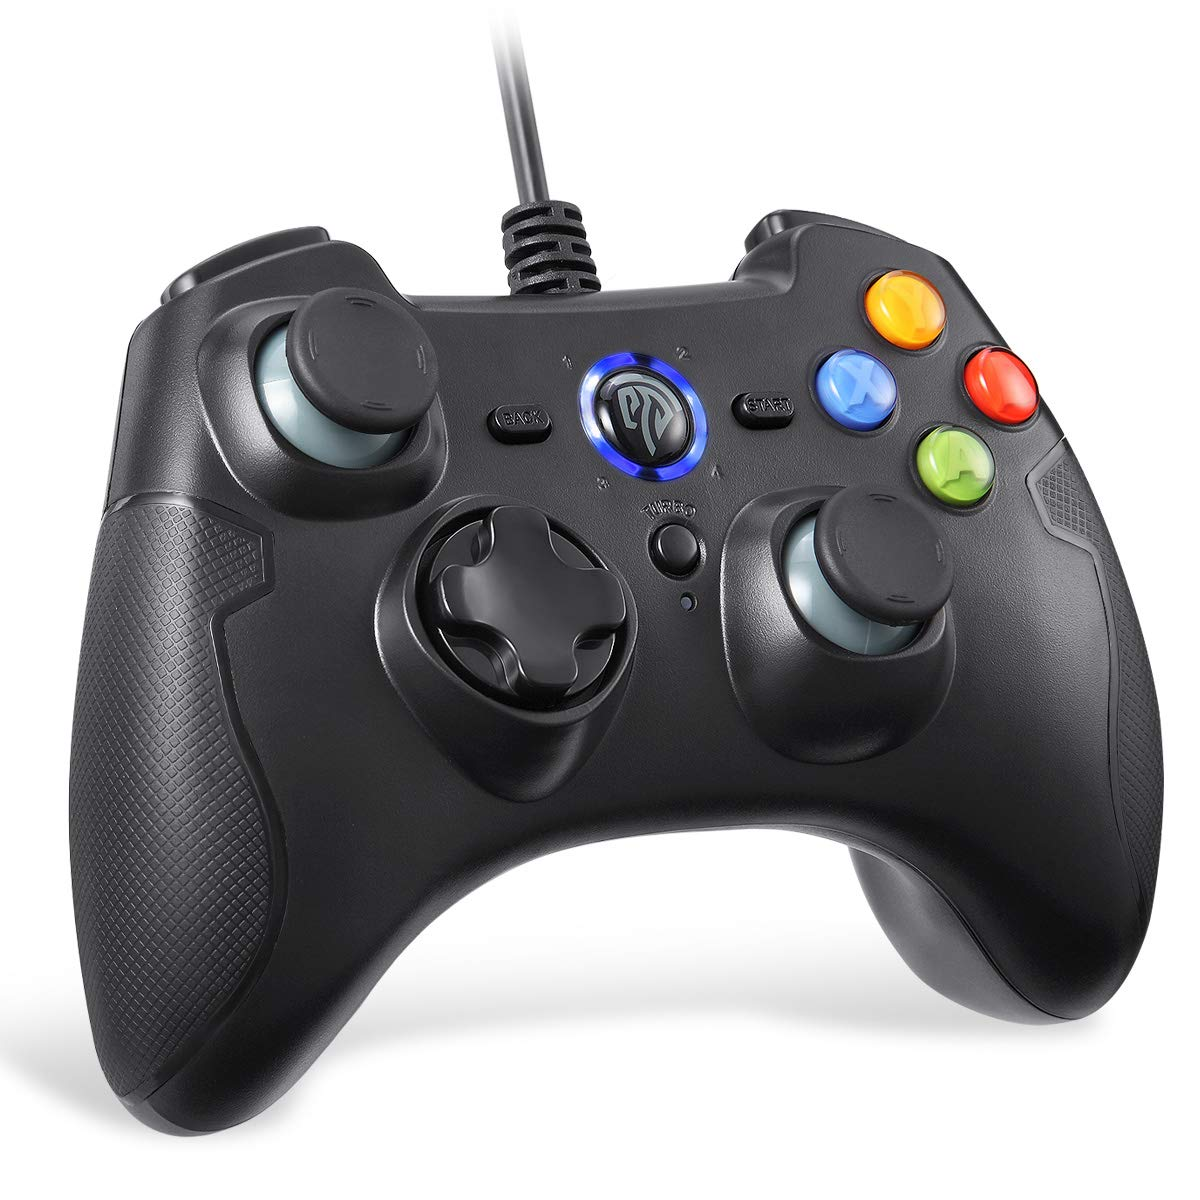 PC Controller Wired, EasySMX Wired USB Game Controller Joystick with Dual-Vibration Turbo and Trigger Buttons for Windows/Android/ PS3/ TV Box(Black)